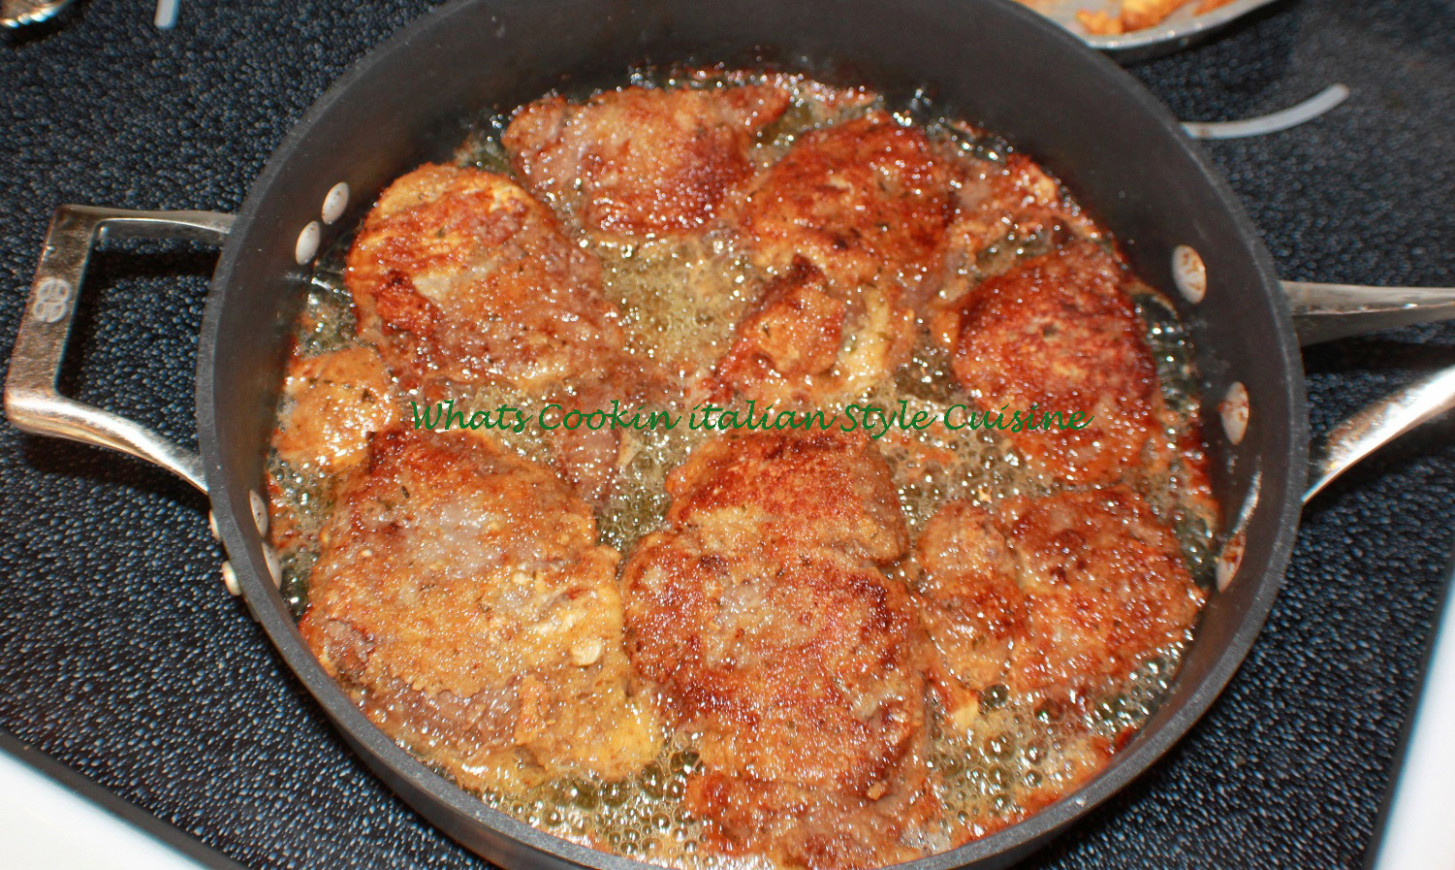 Fried Venison Steaks | What's Cookin' Italian Style Cuisine